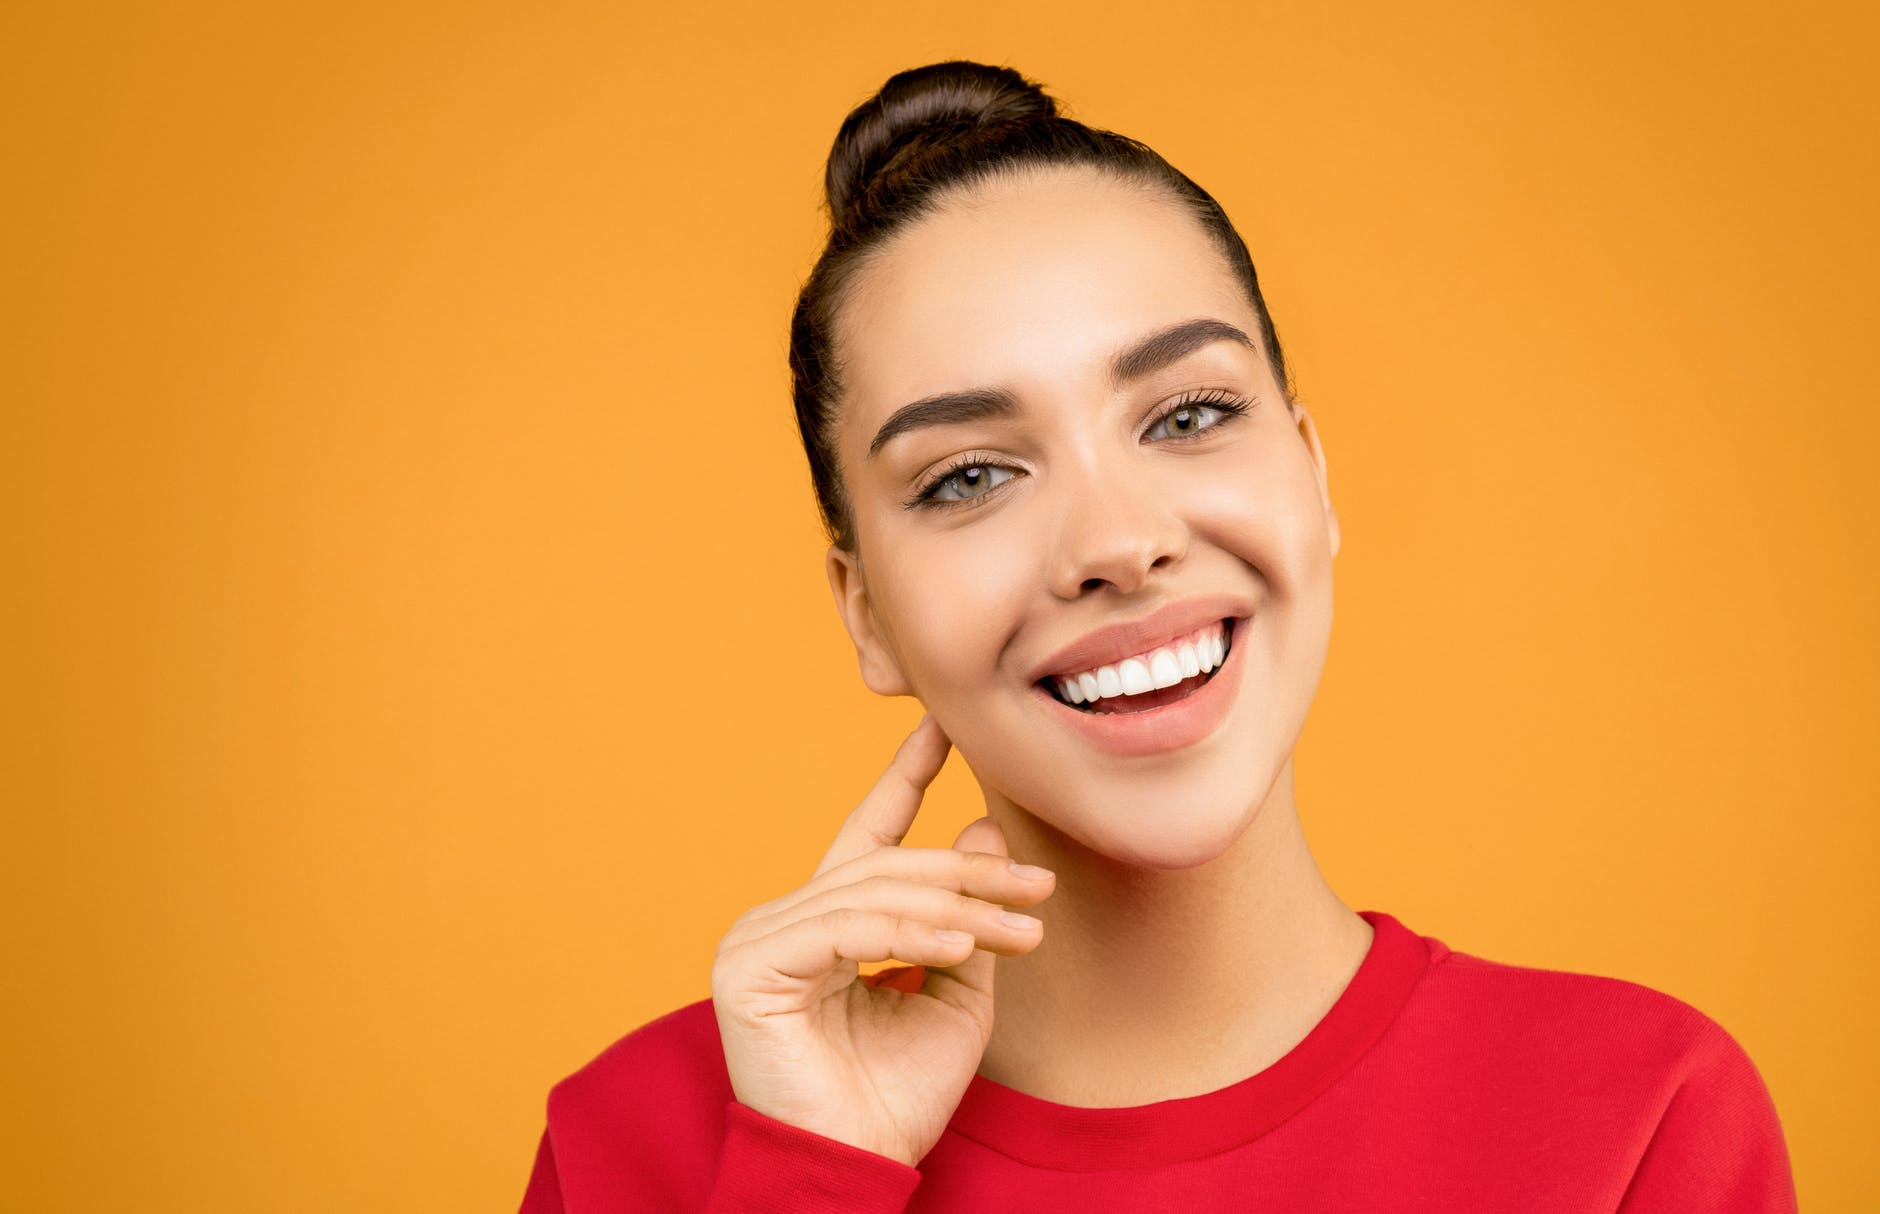 How to Get the V-Shape Face: Cosmetic Treatments